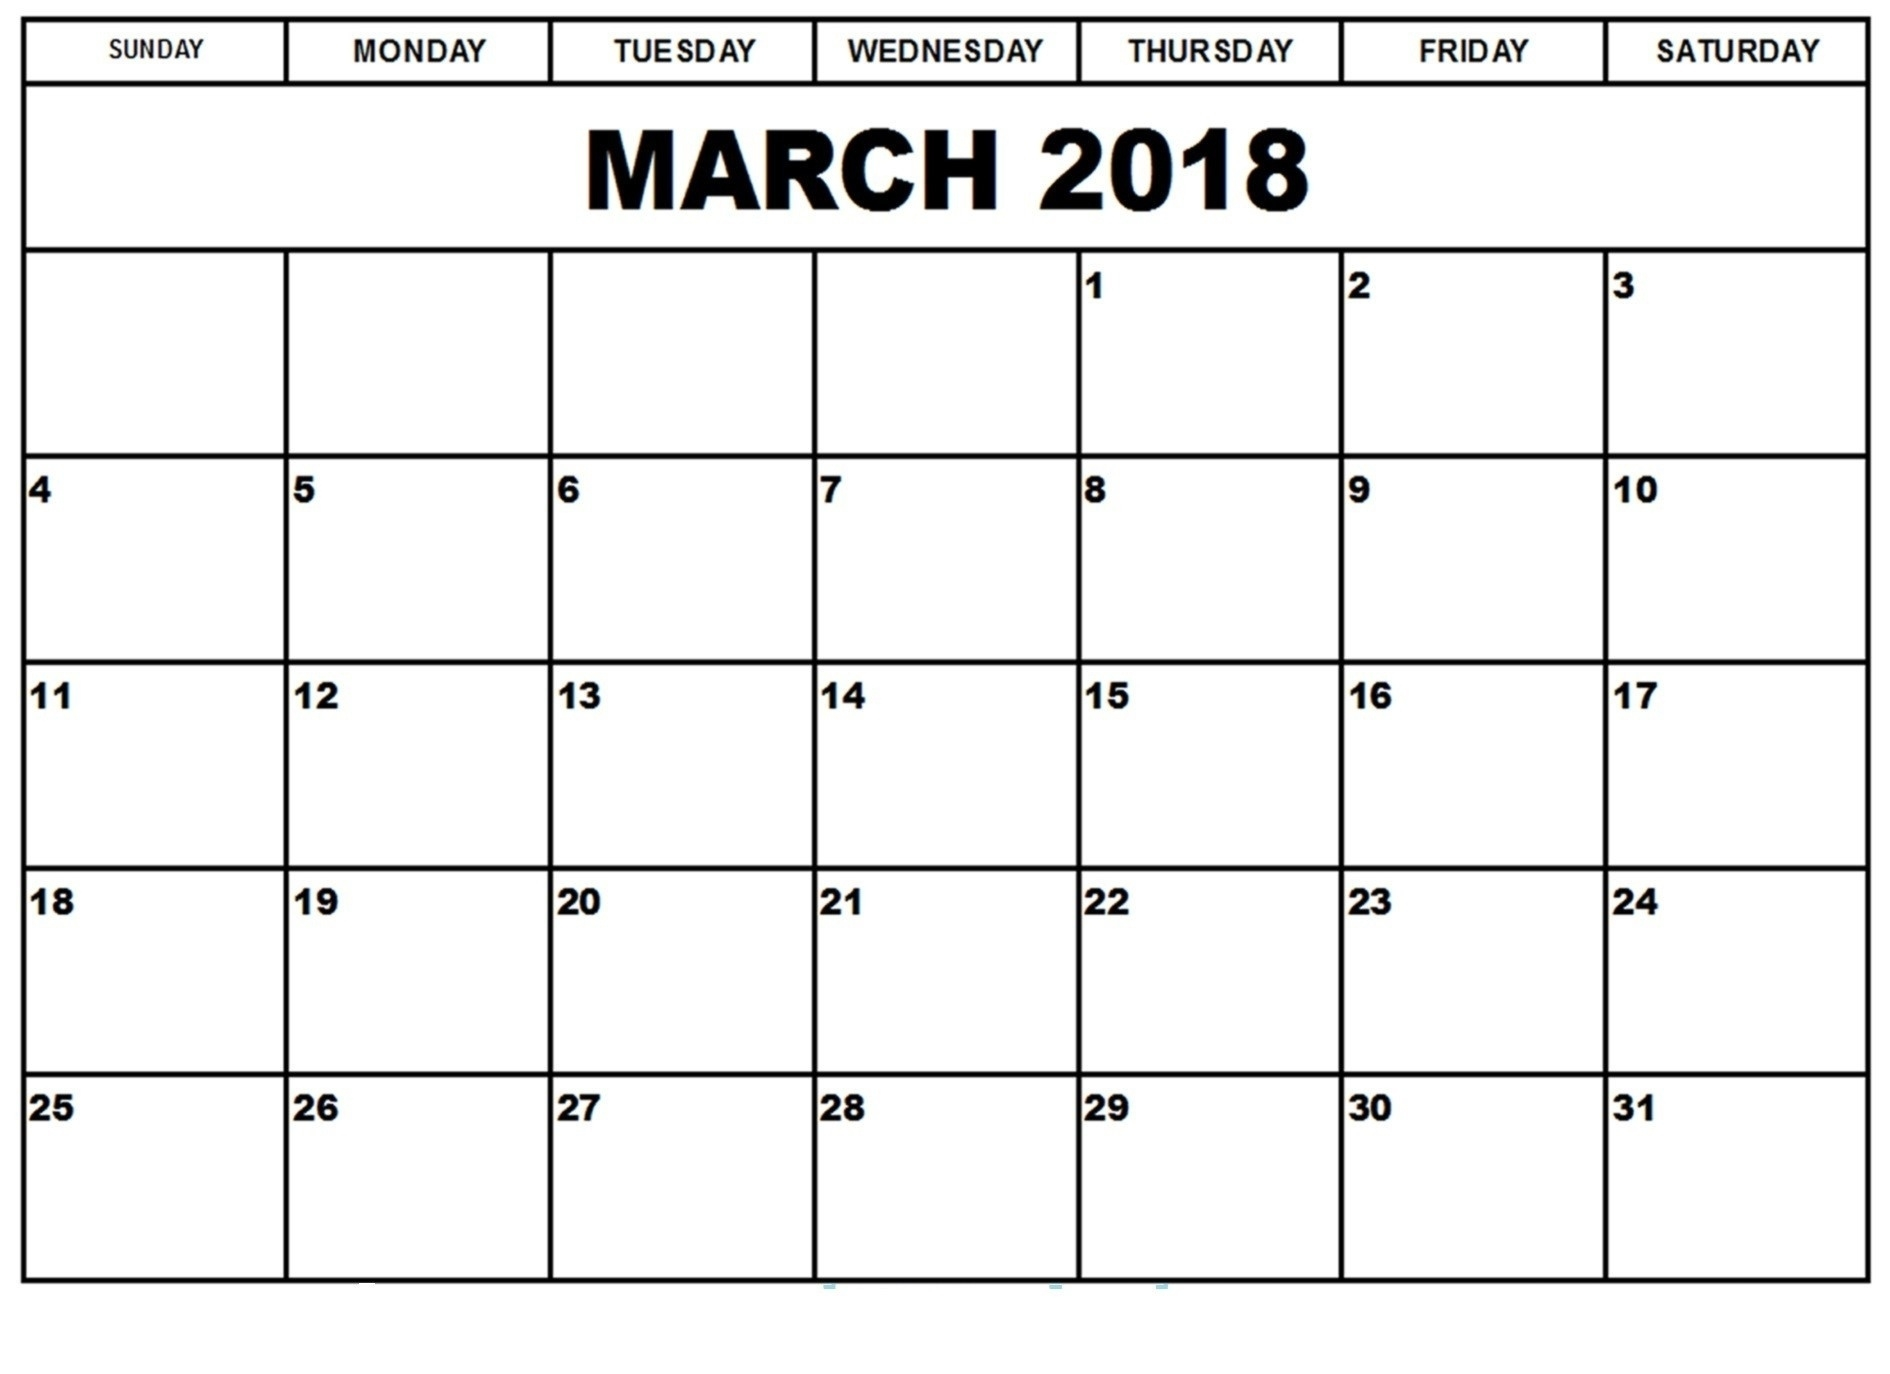 Incredible Blank Calendar Can Type In • Printable Blank Calendar_Blank Calendar Can Type In